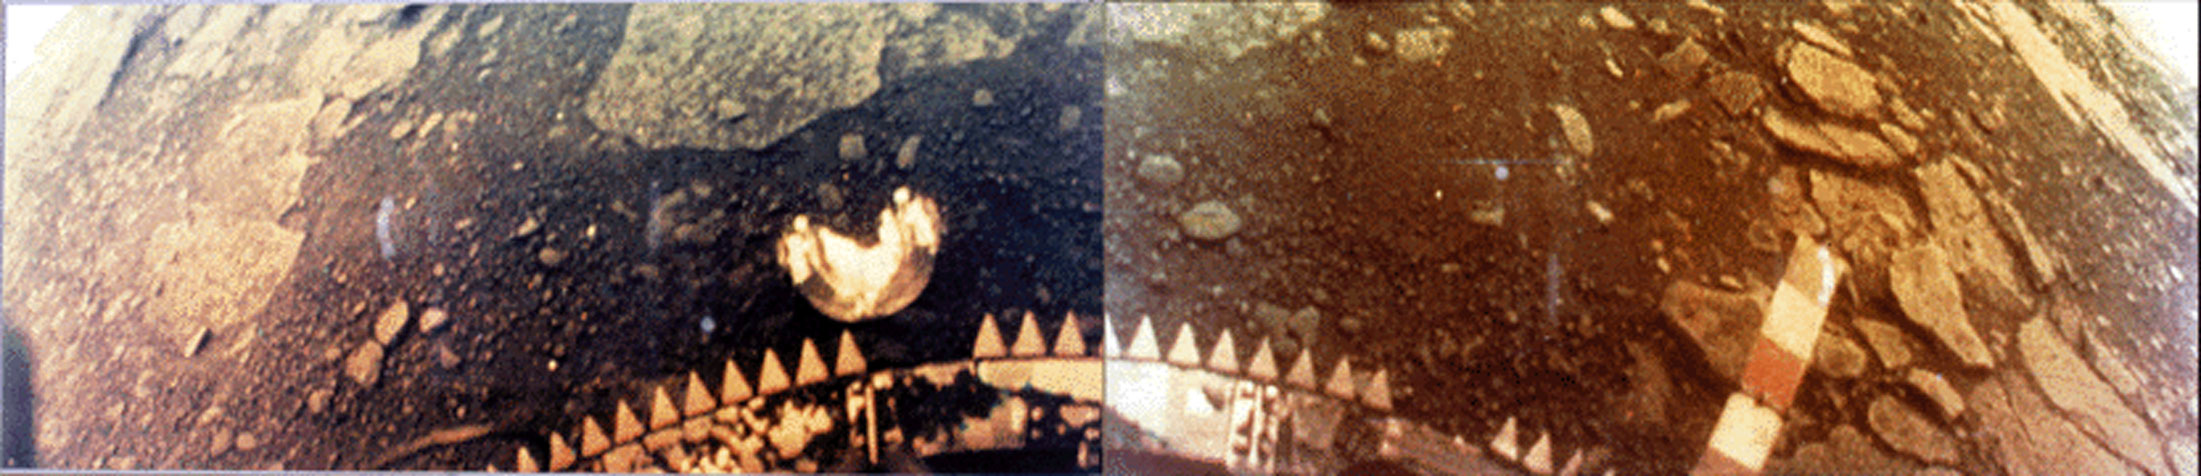 A Venera 13 Lander image of the surface of Venus at 7.5 S, 303. E, east of Phoebe Regio.